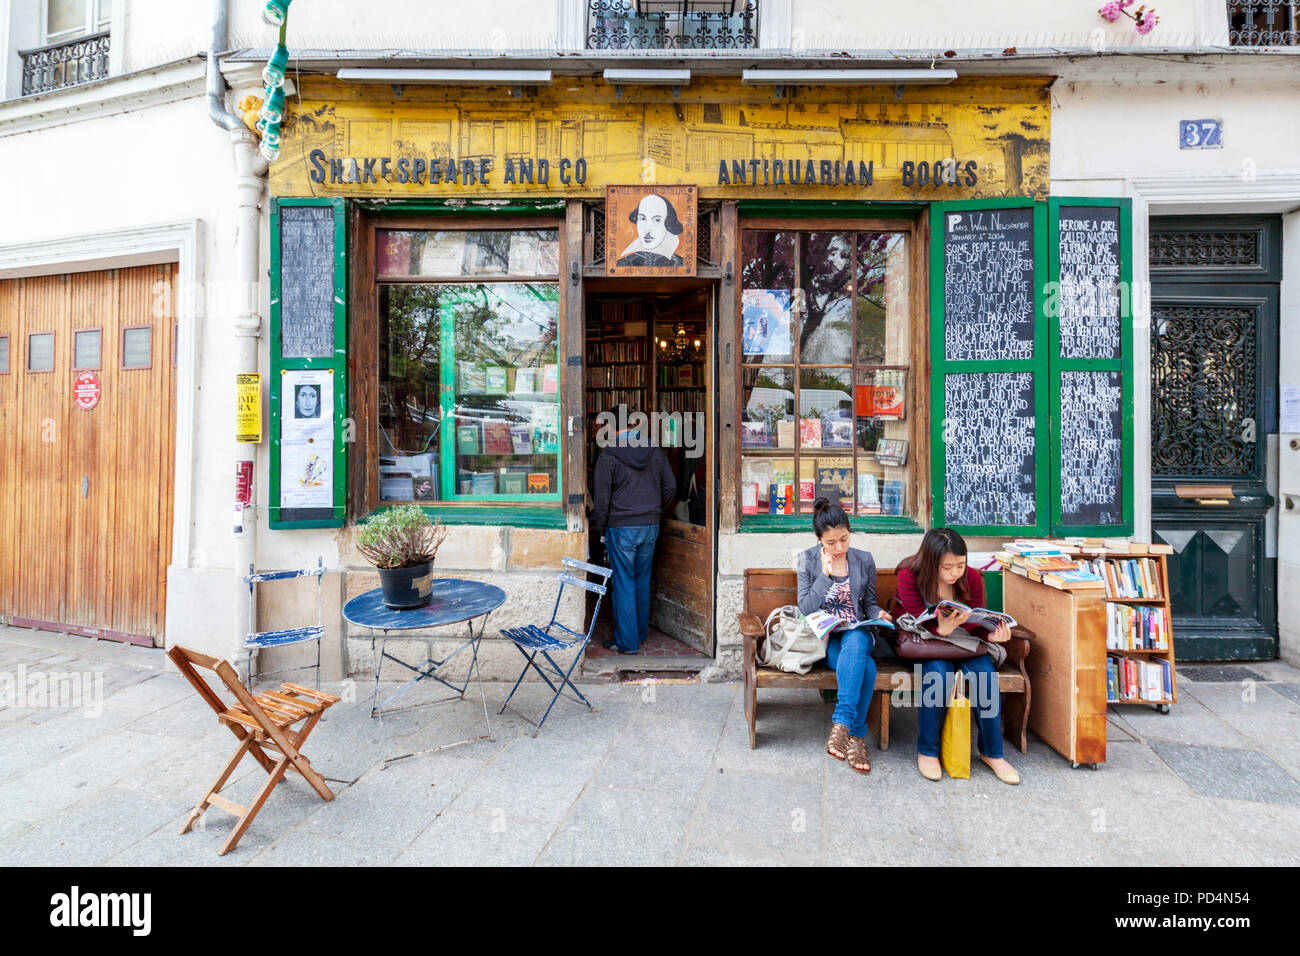 The Shakespeare and Company Bookshop on the Left Bank, Paris, France - Stock Image